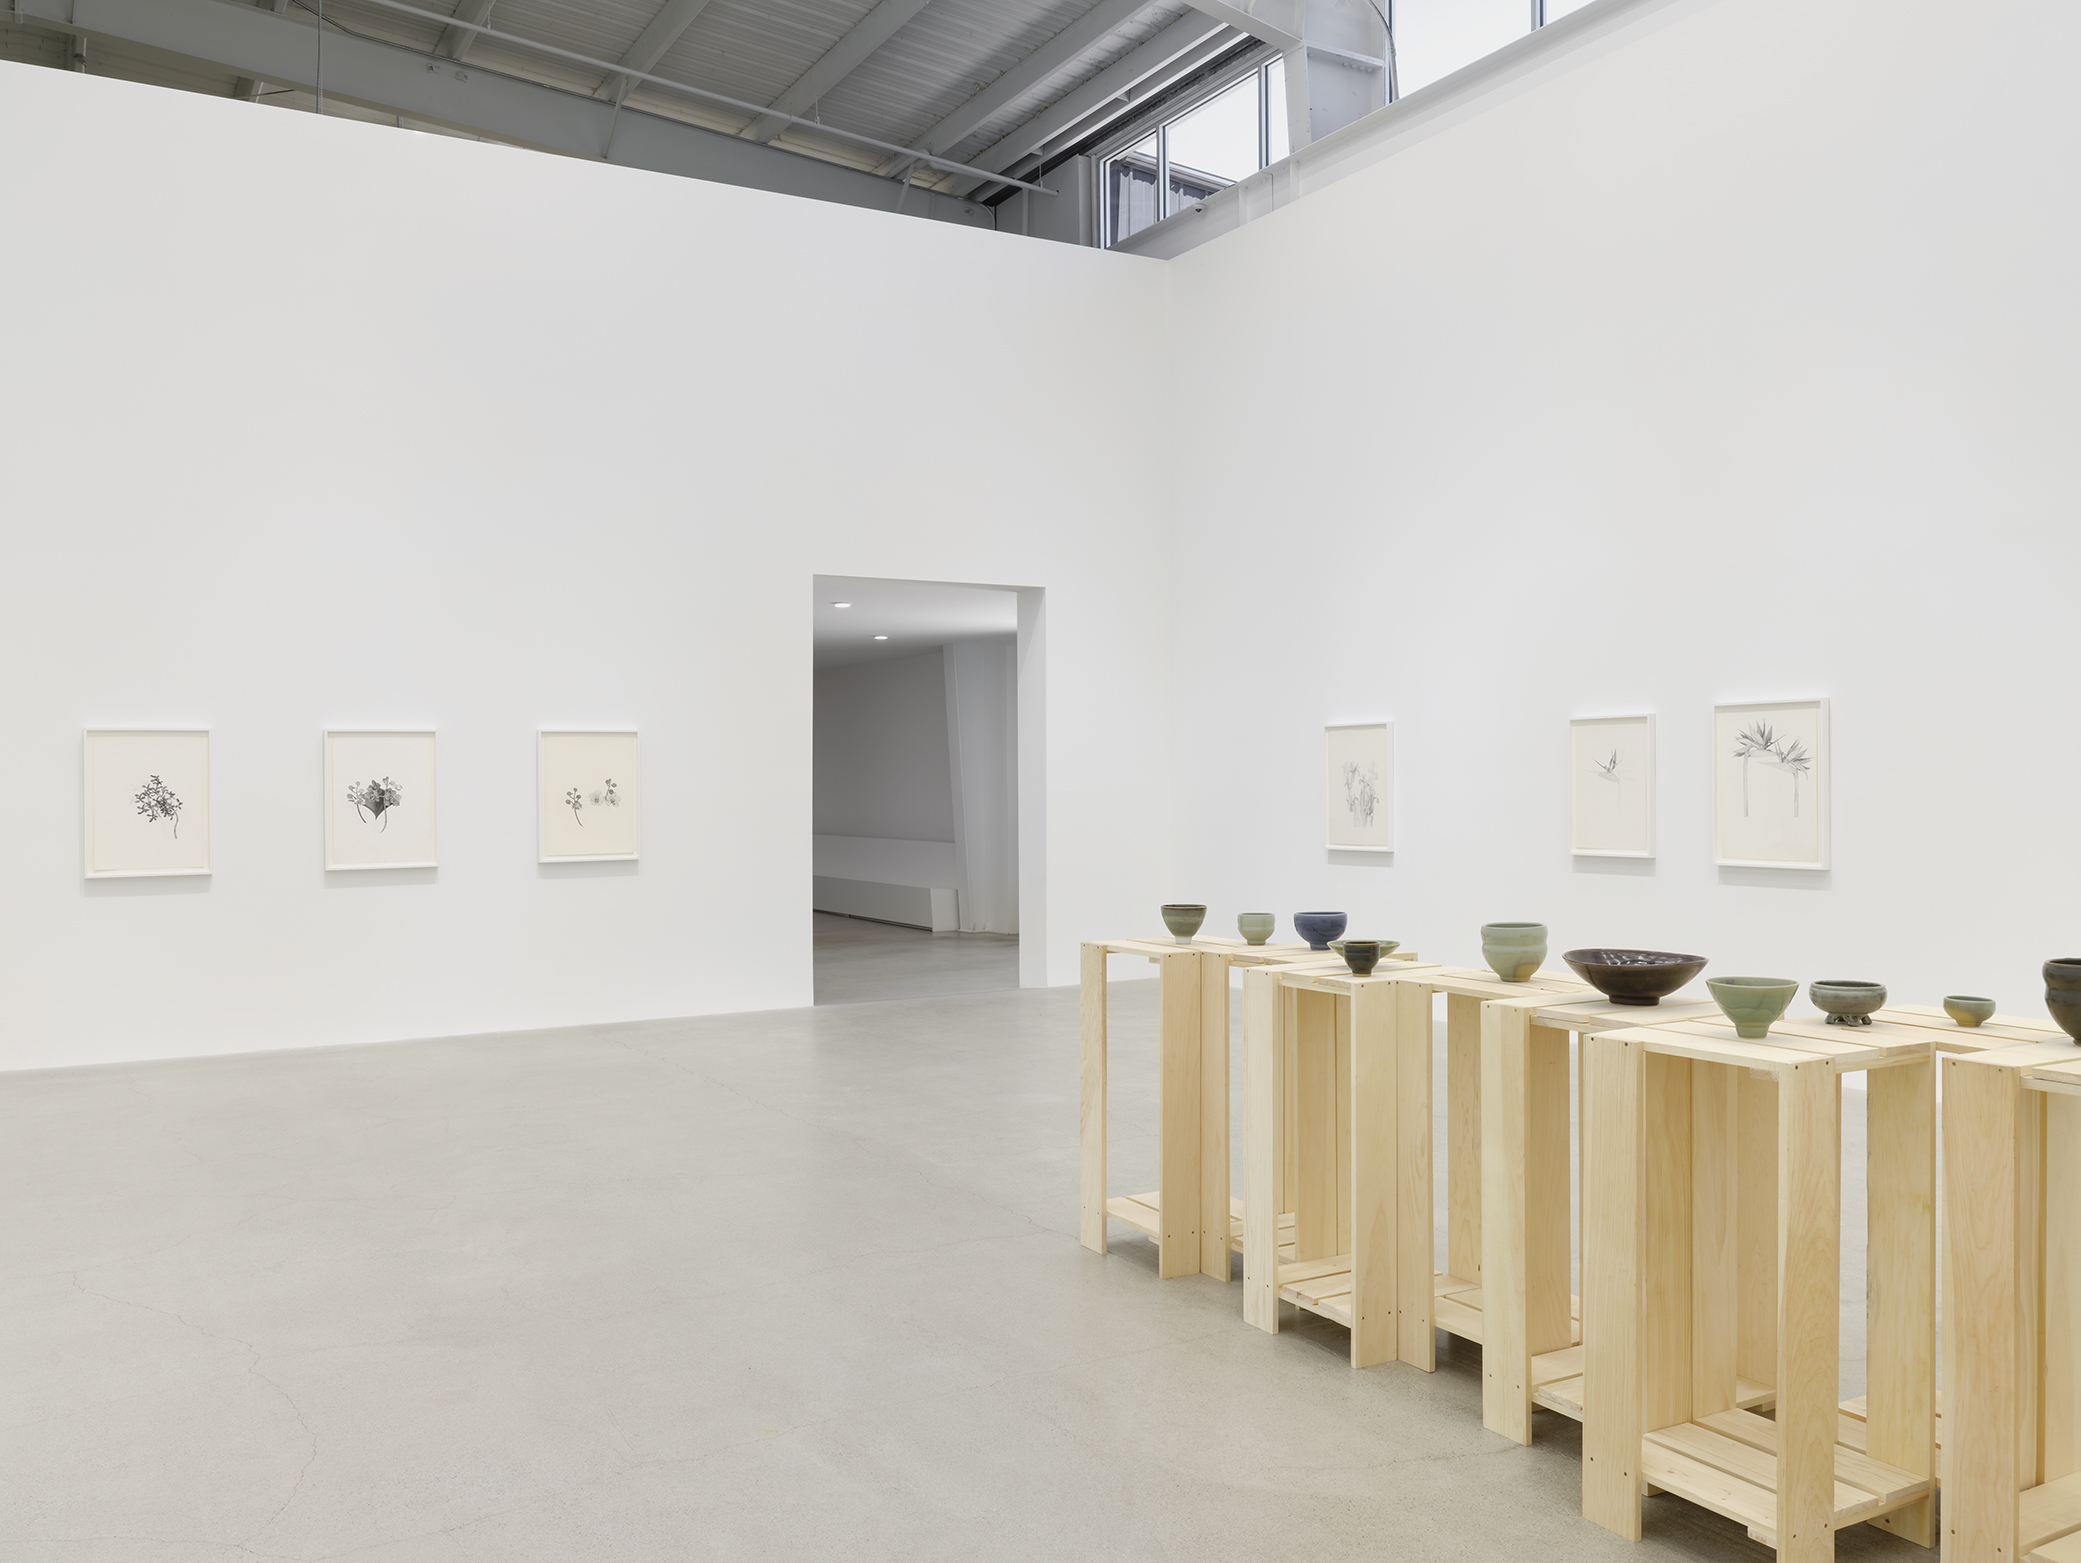 Charmian Johnson, installation view, Catriona Jeffries, Vancouver, 2021 by